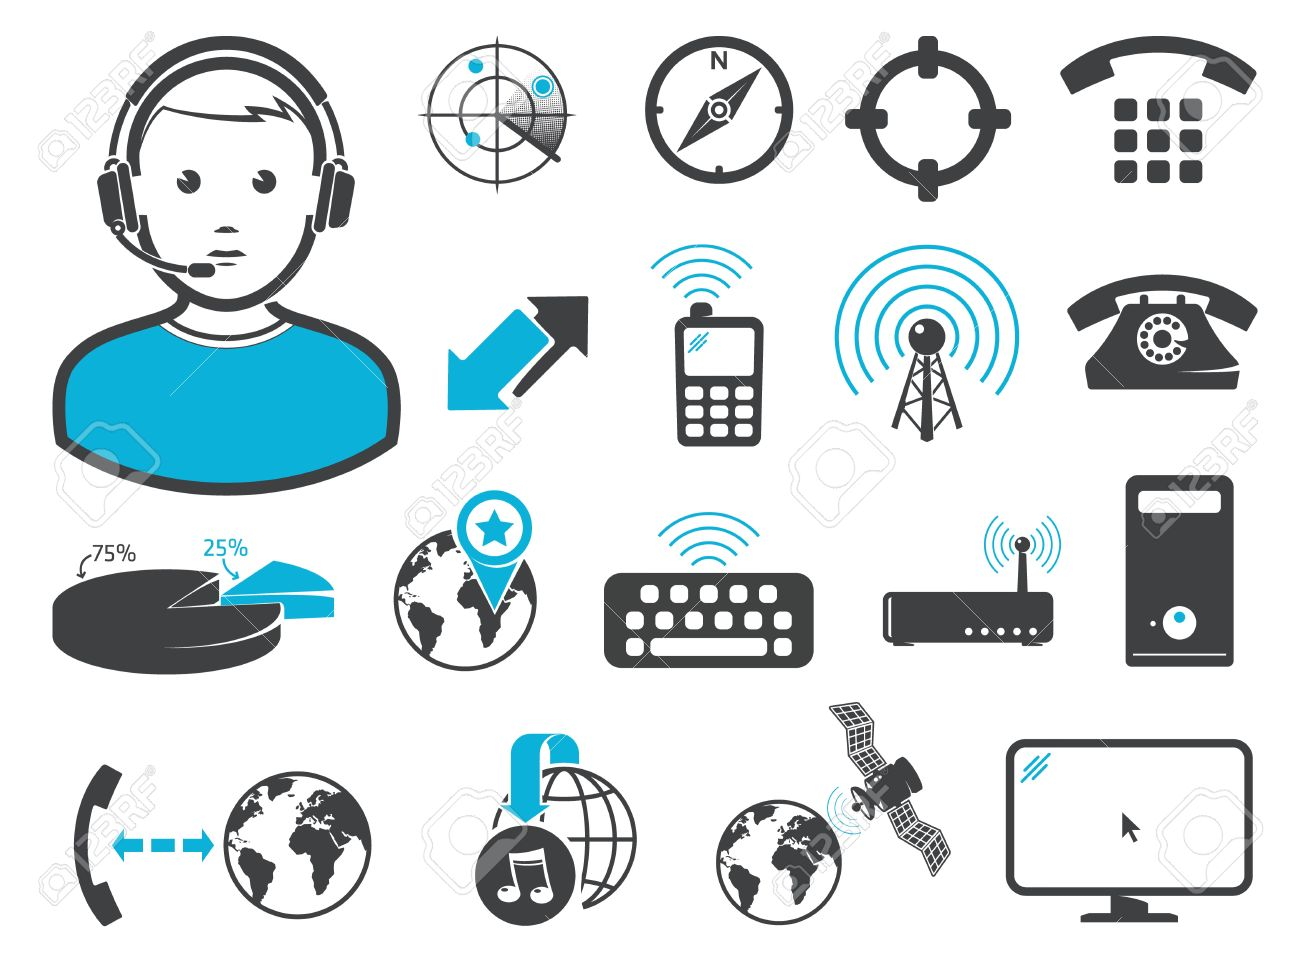 Wireless connection technologies, icons and signs, set Stock Vector - 12843239